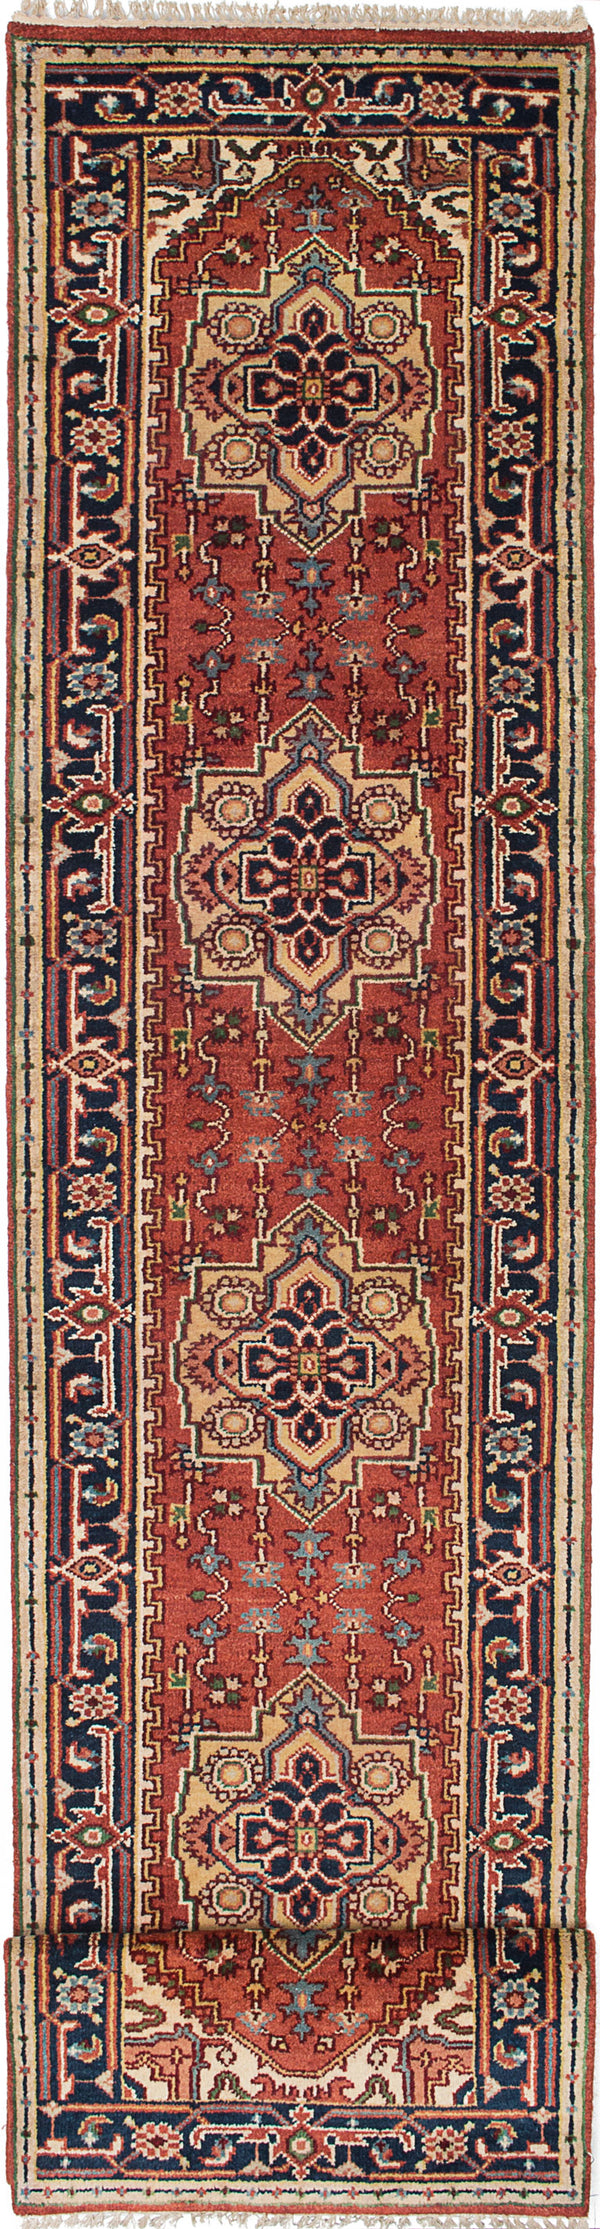 "Hand-knotted Indian Floral  Traditional Serapi-Heritage Runner rug  Dark Copper, Navy Blue 2'7 x 12'2"" """